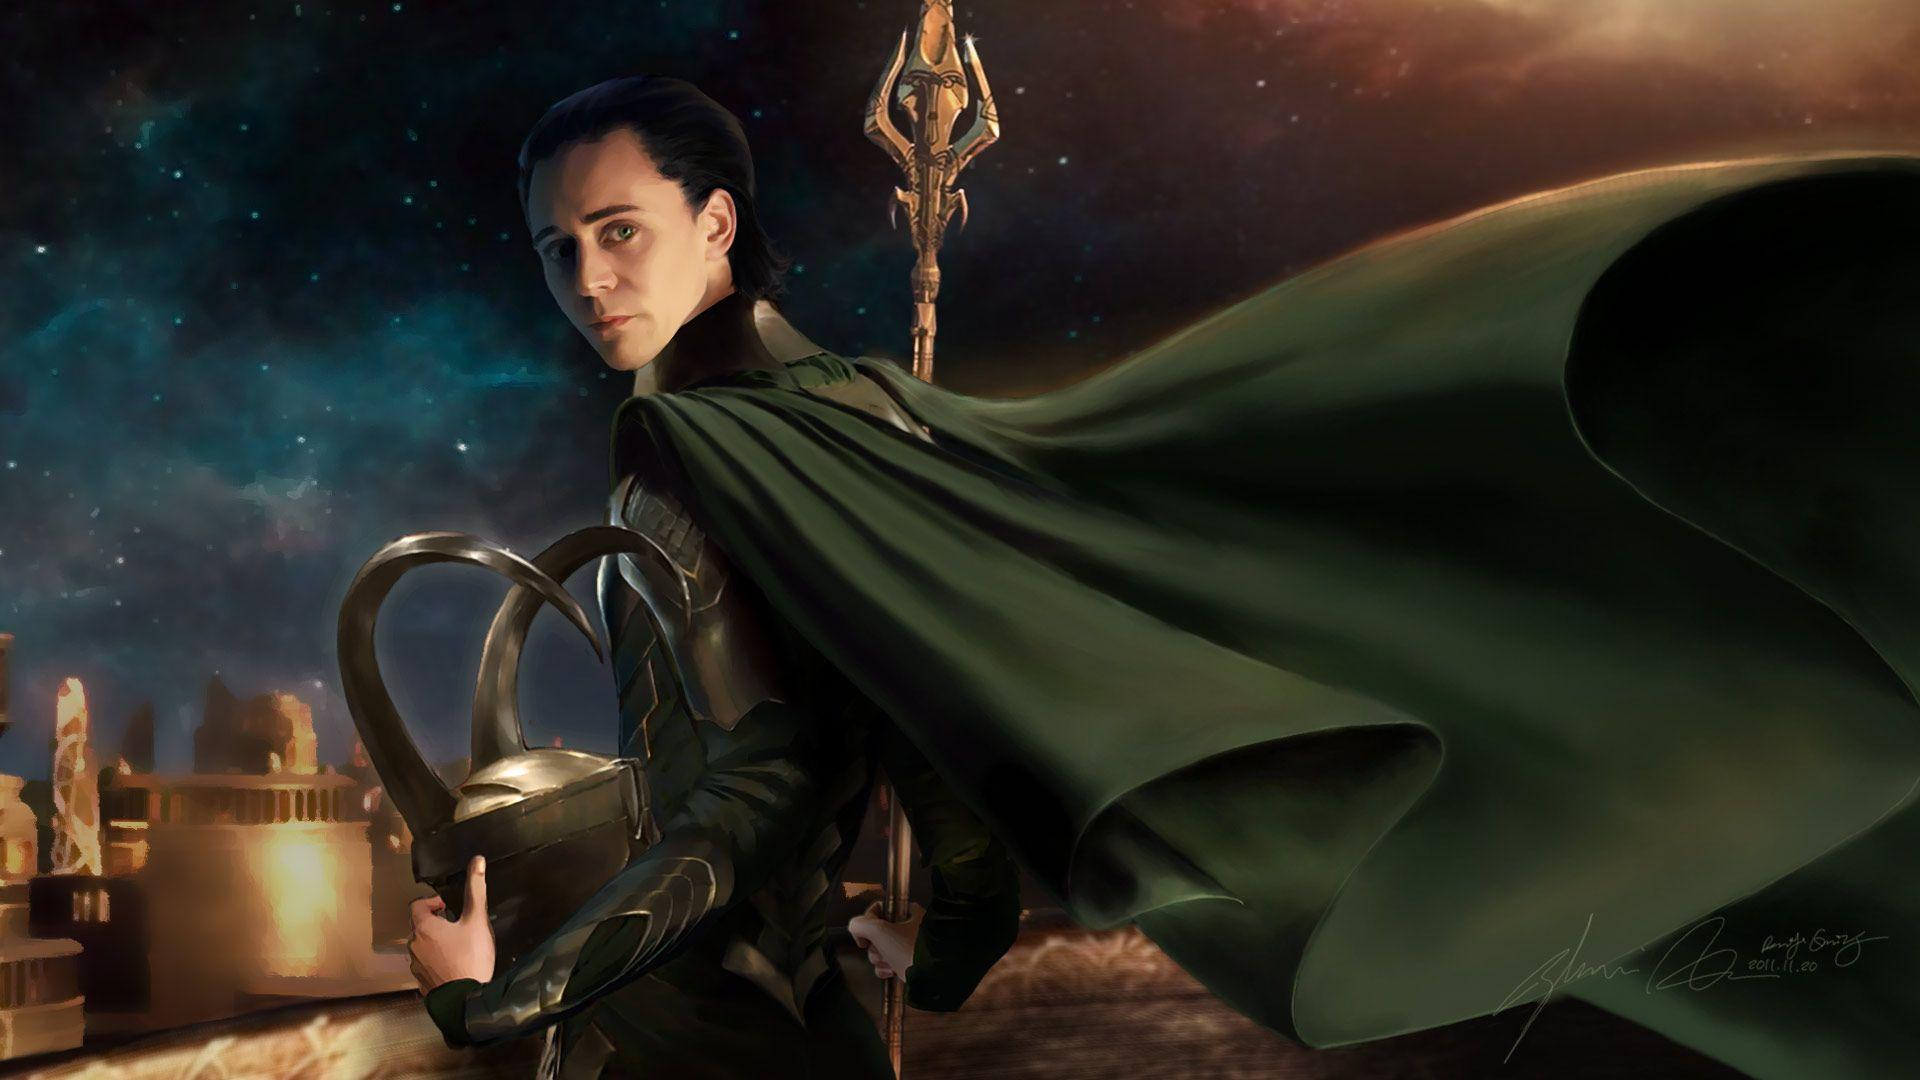 loki background for tigger - photo #18